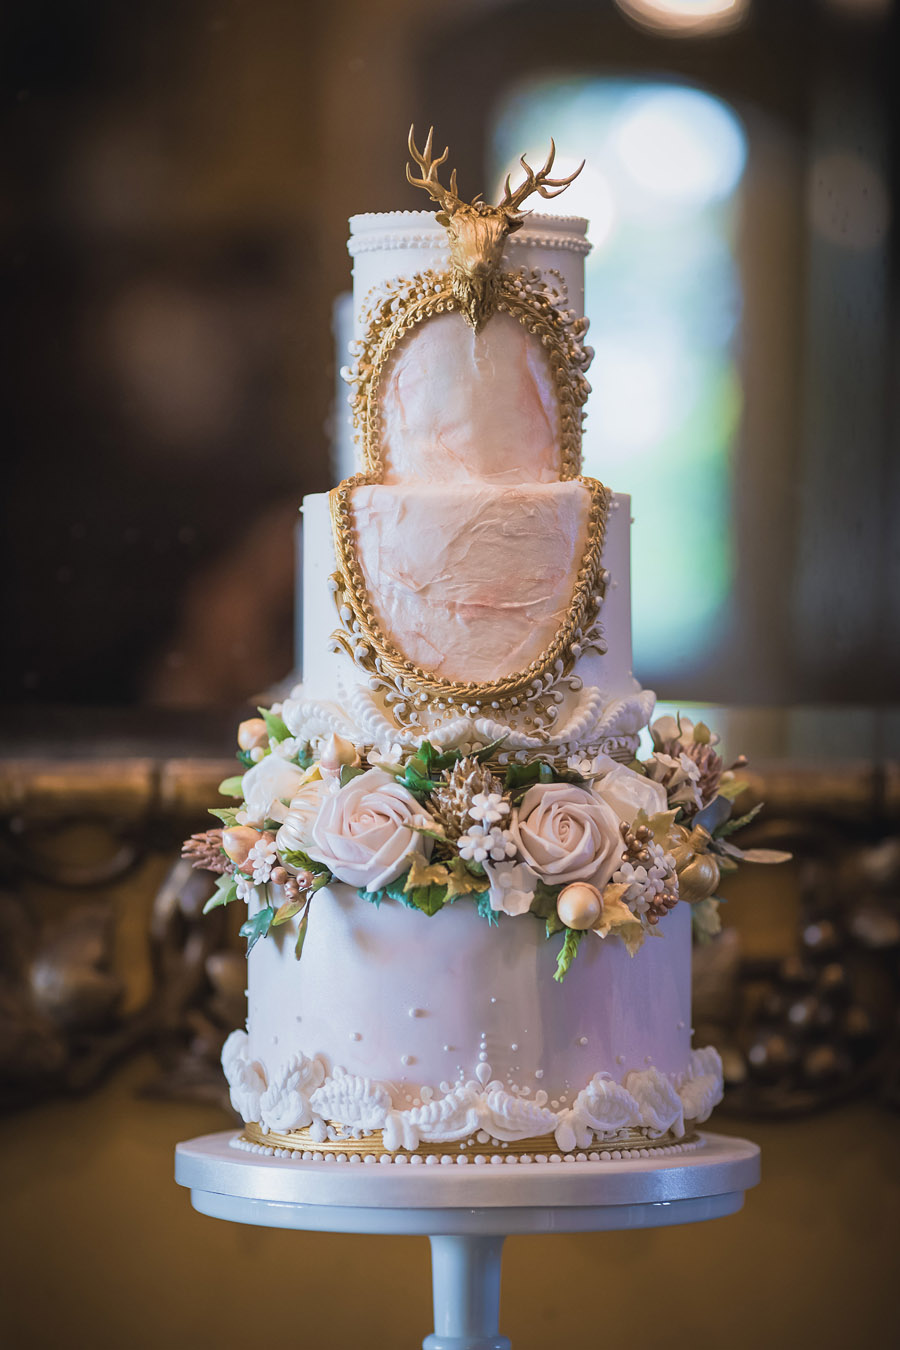 Beautiful wedding cakes by The Frostery - trends and ideas for 2019 (14)